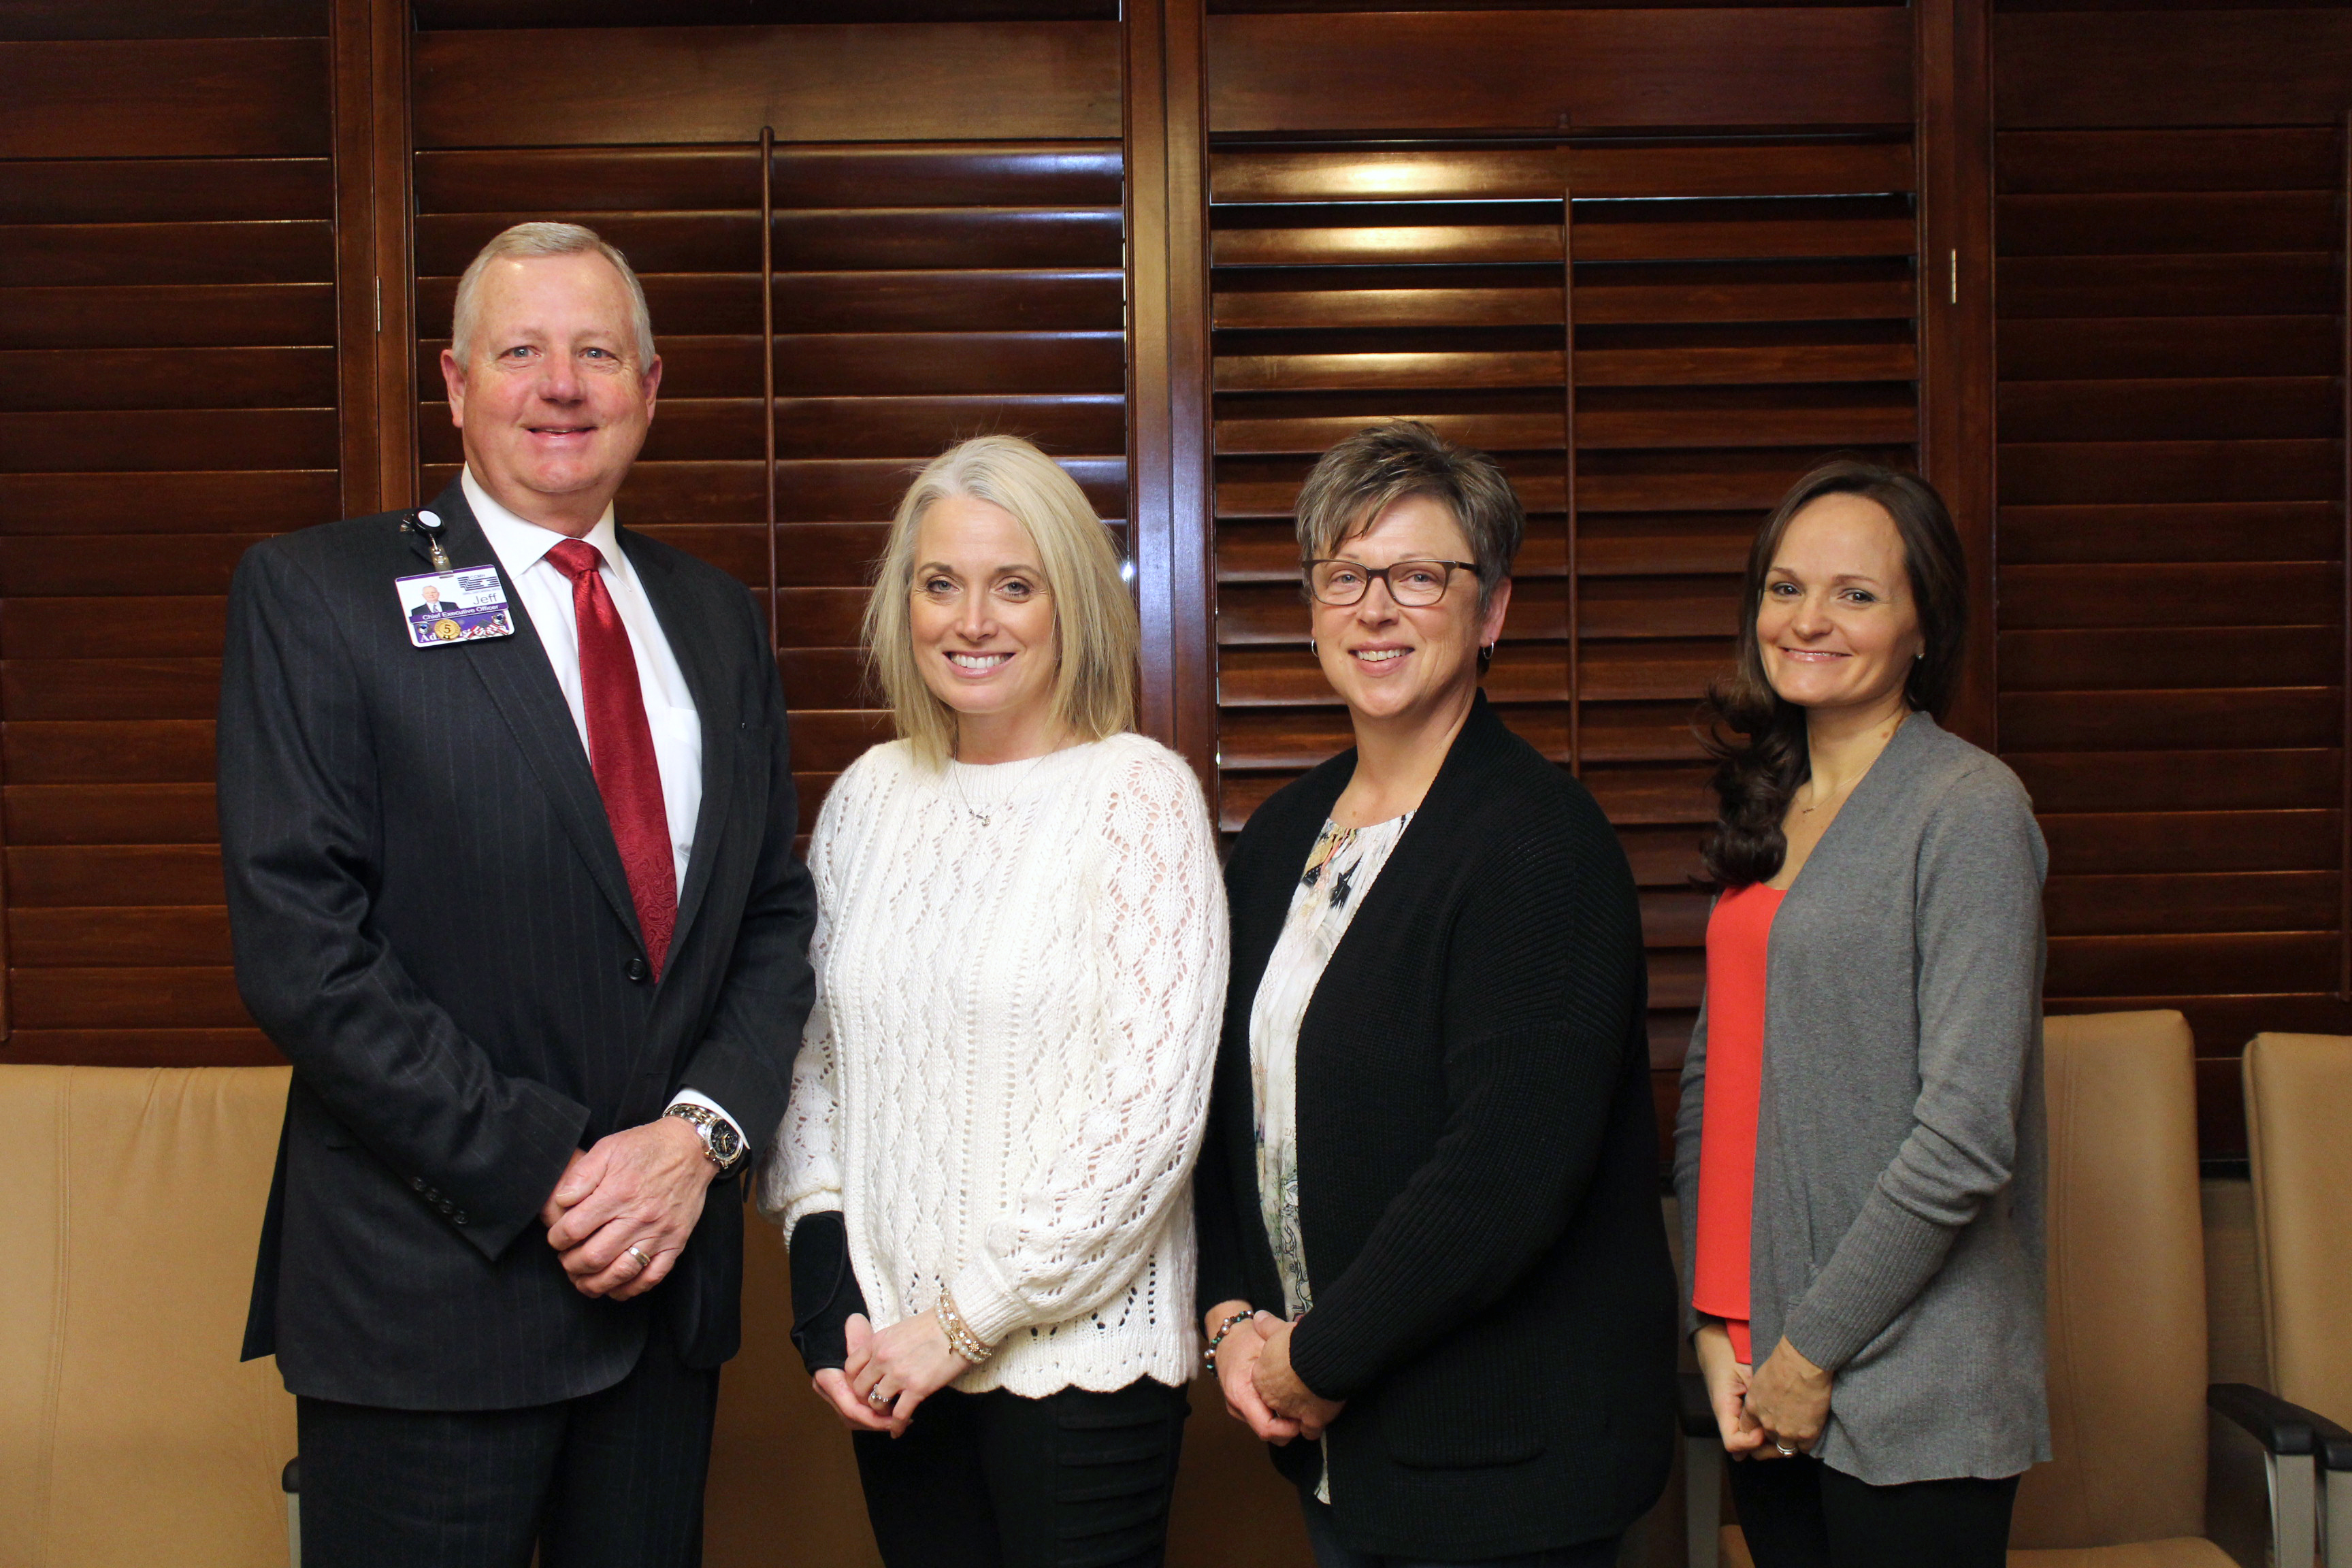 Carroll County Memorial Hospital Board Welcomes New Members